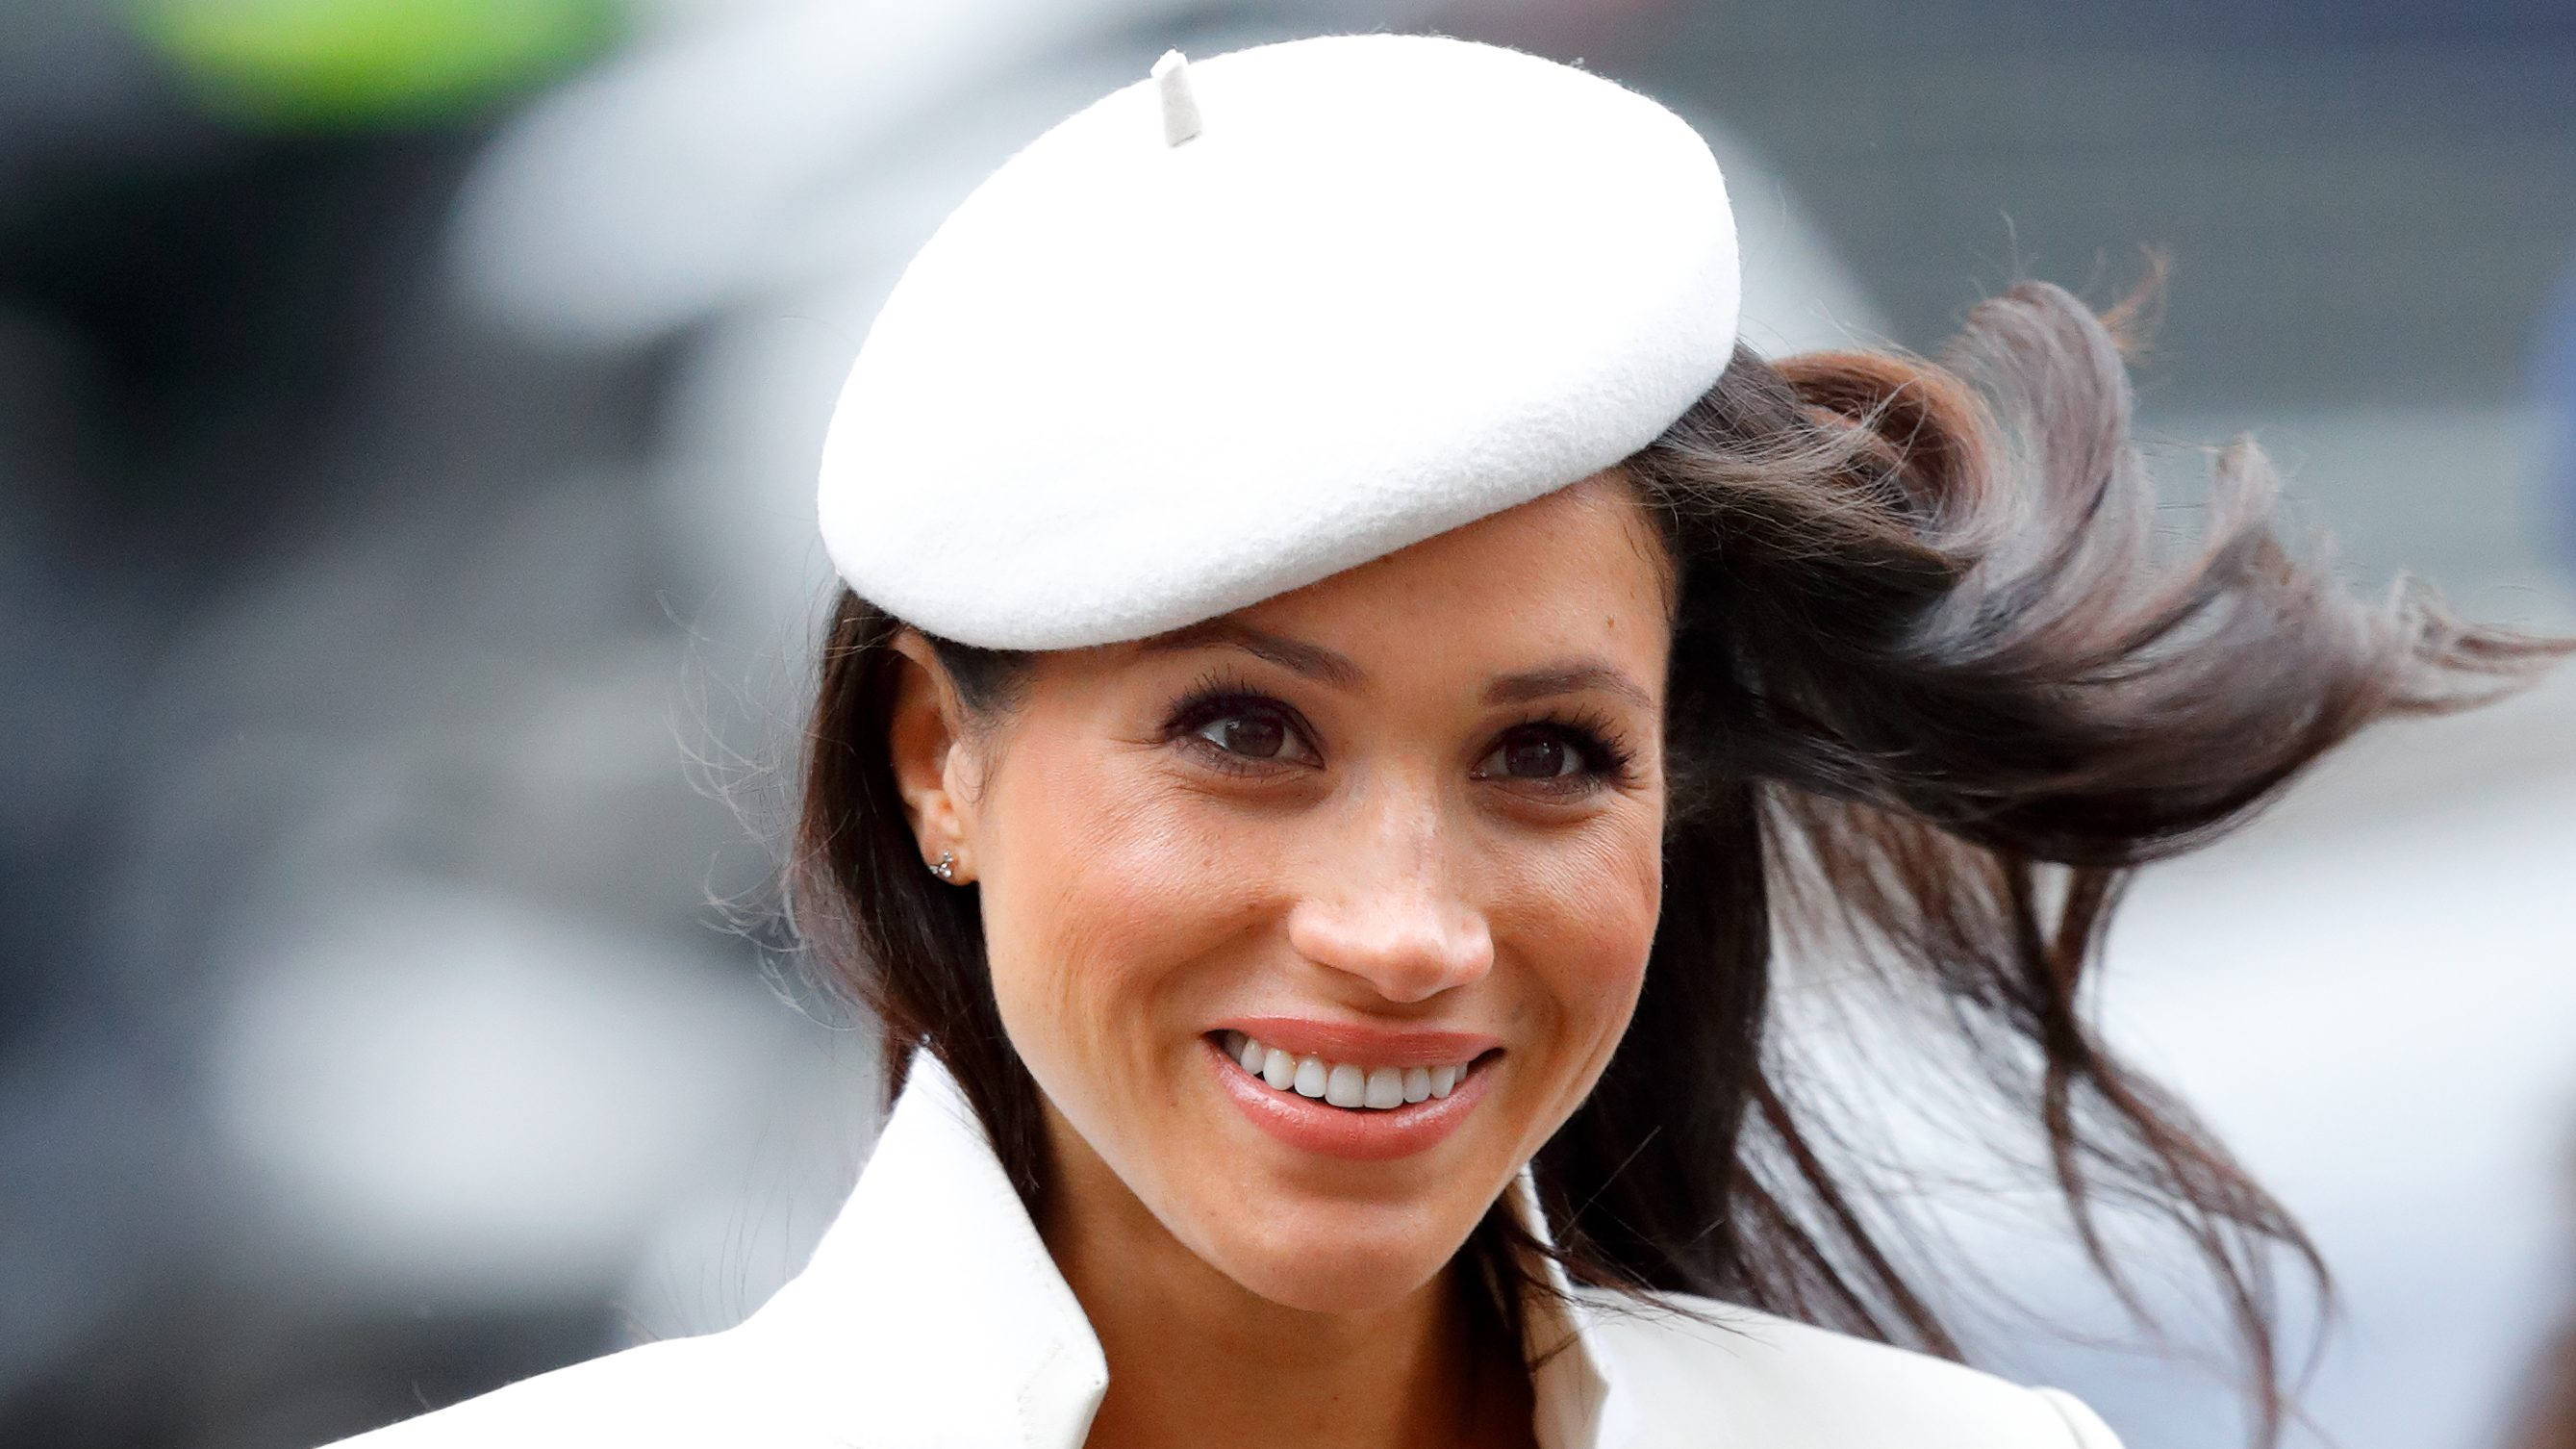 Meghan Markle's Close Friend Says Duchess Will Be a 'Strict' But 'Good Mother'